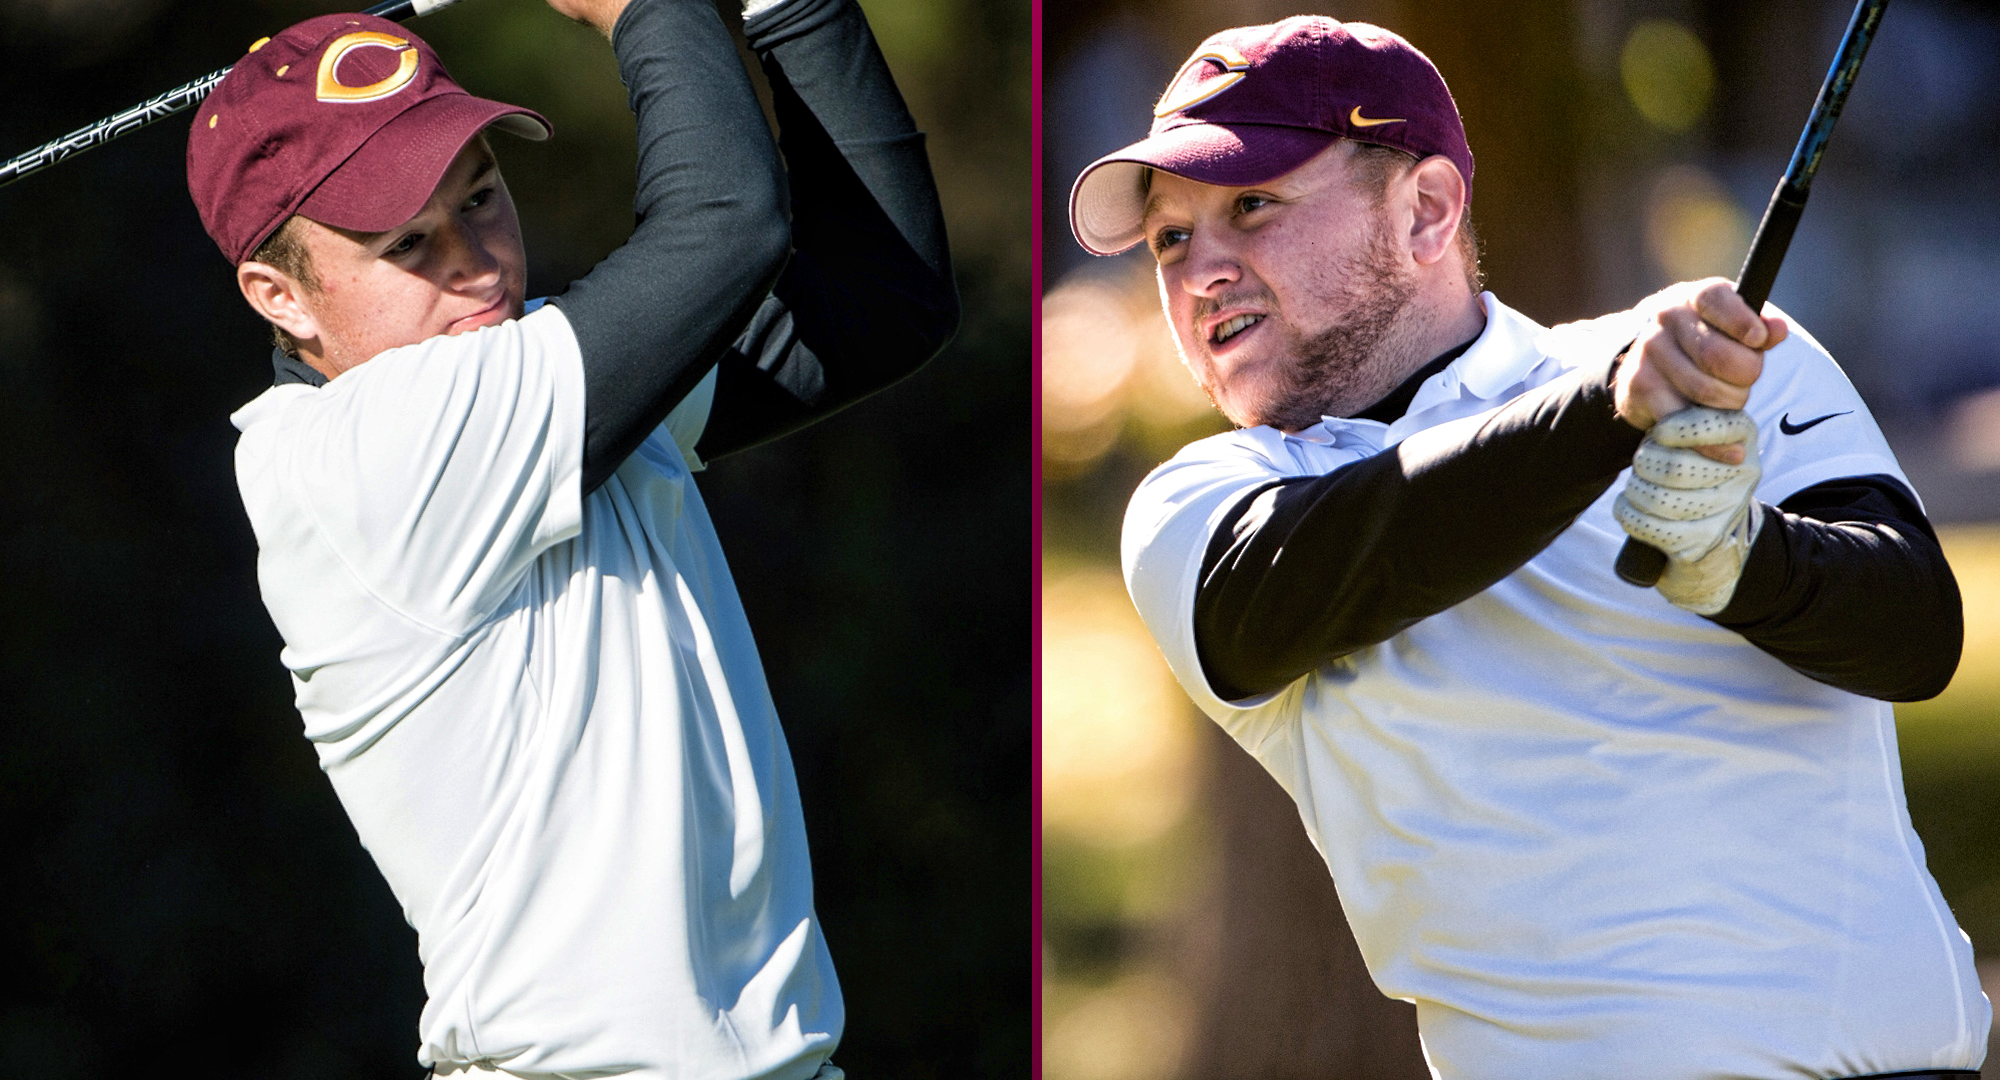 Blake Kahlbaugh (L) and Nathaniel Kahlbaugh both shot a two-day total 154 to lead the Cobbers at the St. John's Fall Invite.